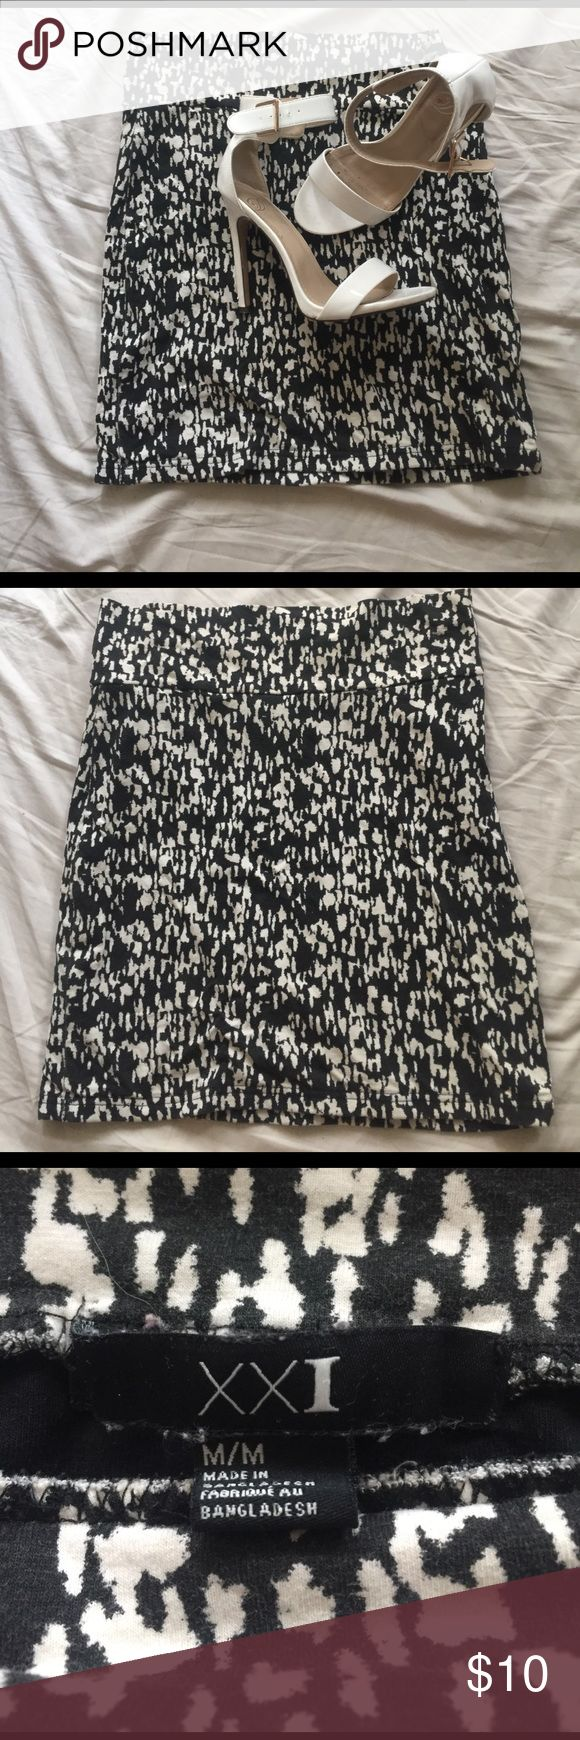 Forever 21 Bandage Skirt Black and white graphic print bandage skirt. Great condition! Super comfy going out skirt or can be dressed up for the office. Forever 21 Skirts Pencil